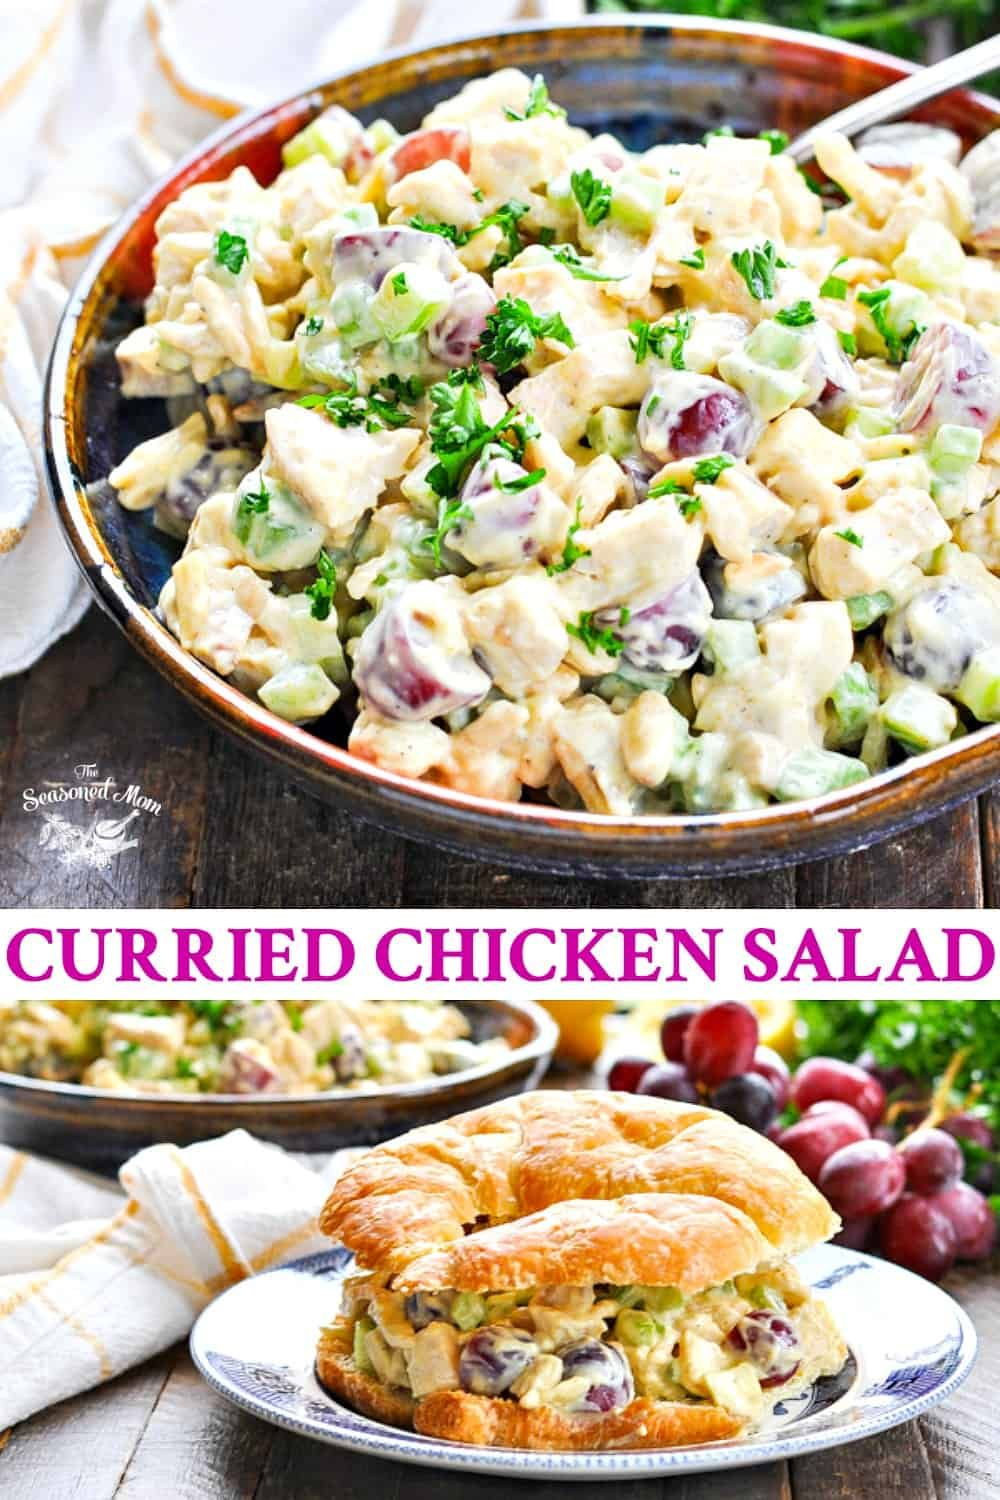 Curried Chicken Salad images